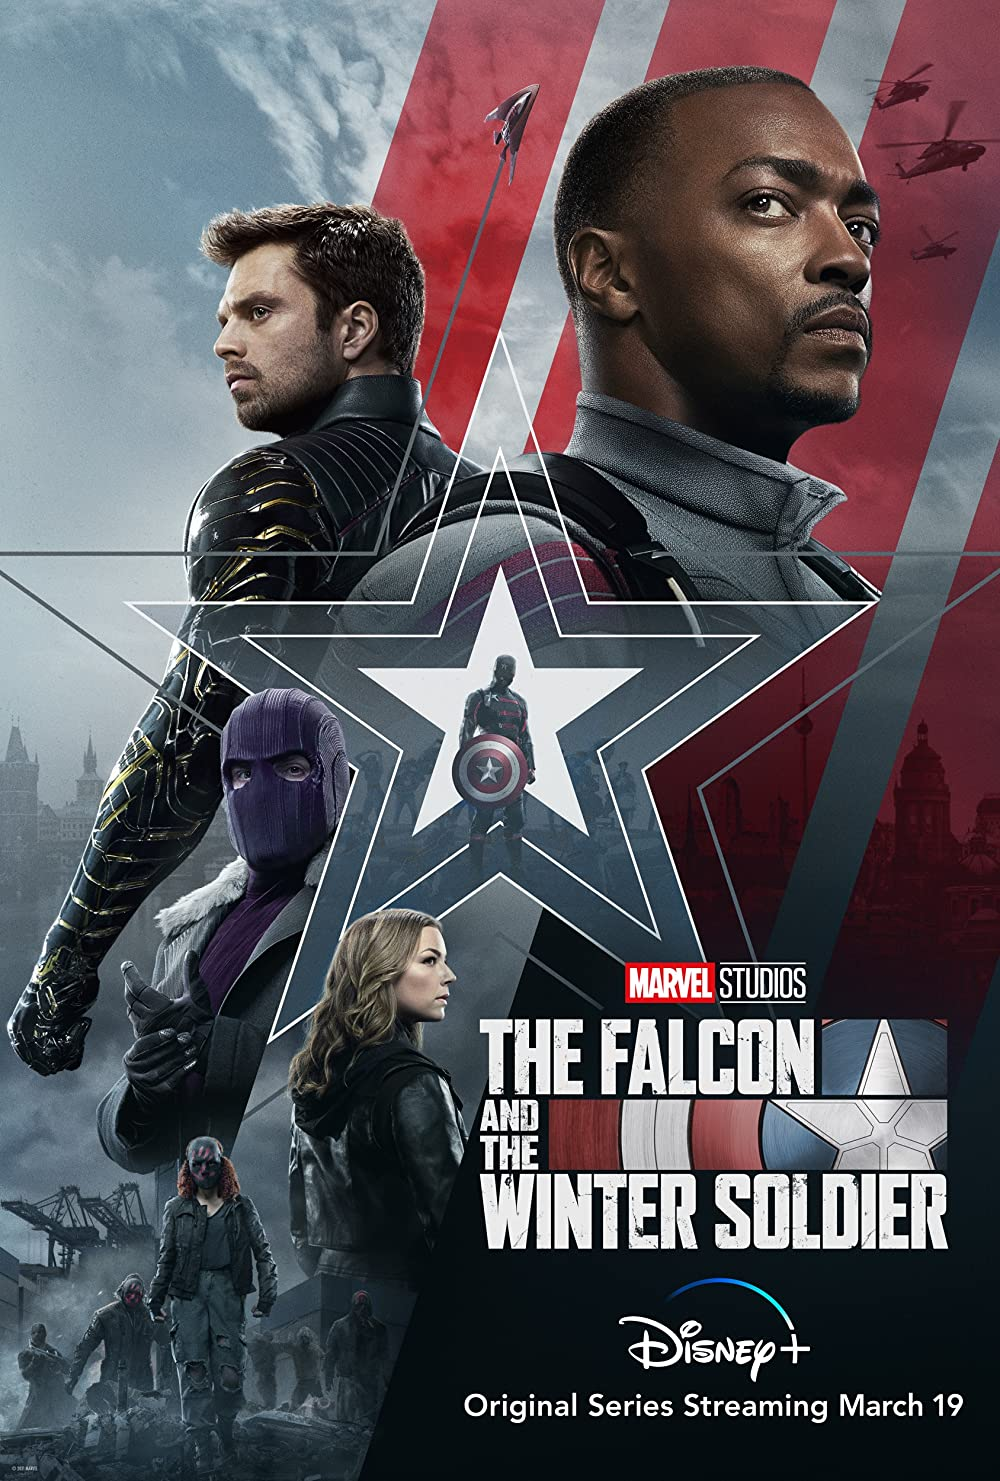 The Falcon and the Winter Soldier S01E05 2021 Hindi Dual Audio DSNP Series 720p HDRip 400MB ESub Download